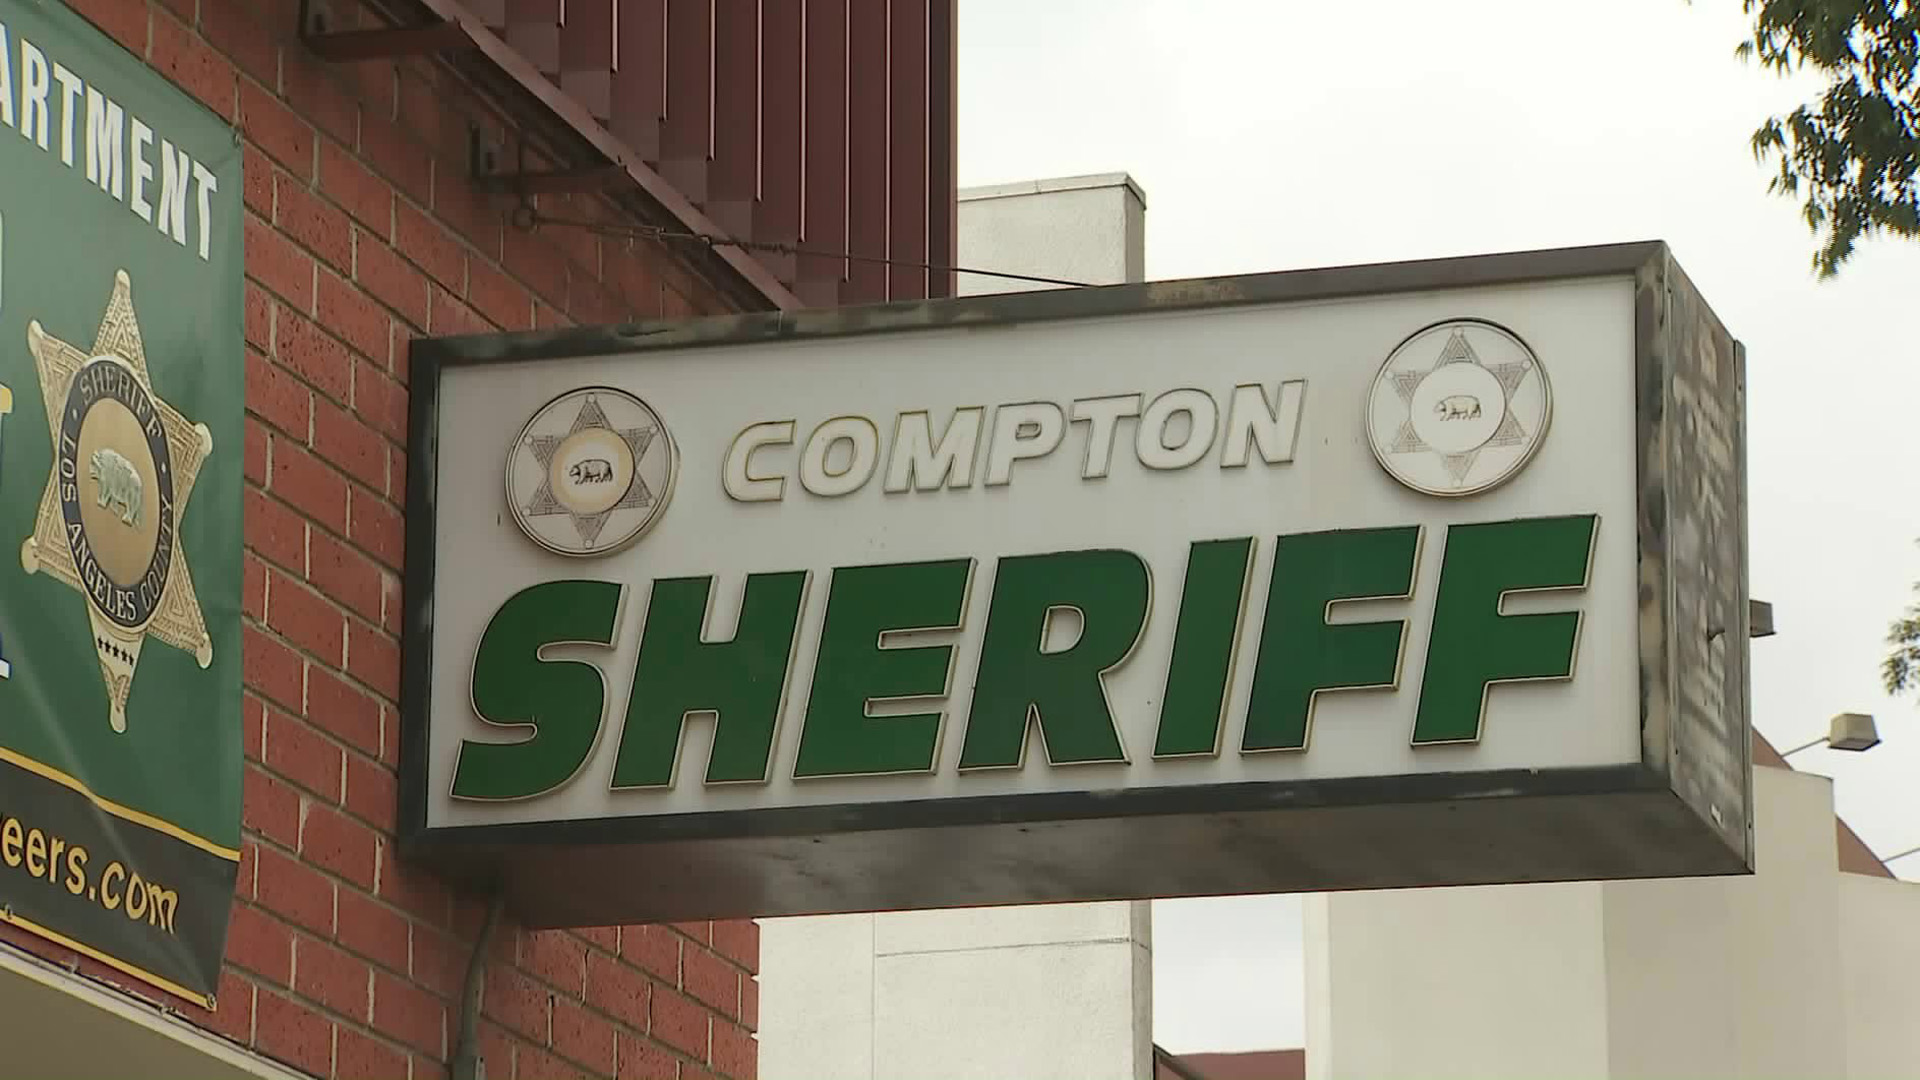 A sign for the Compton station of the Los Angeles County Sheriff's Department is seen on May 1, 2018. (Credit: KTLA)